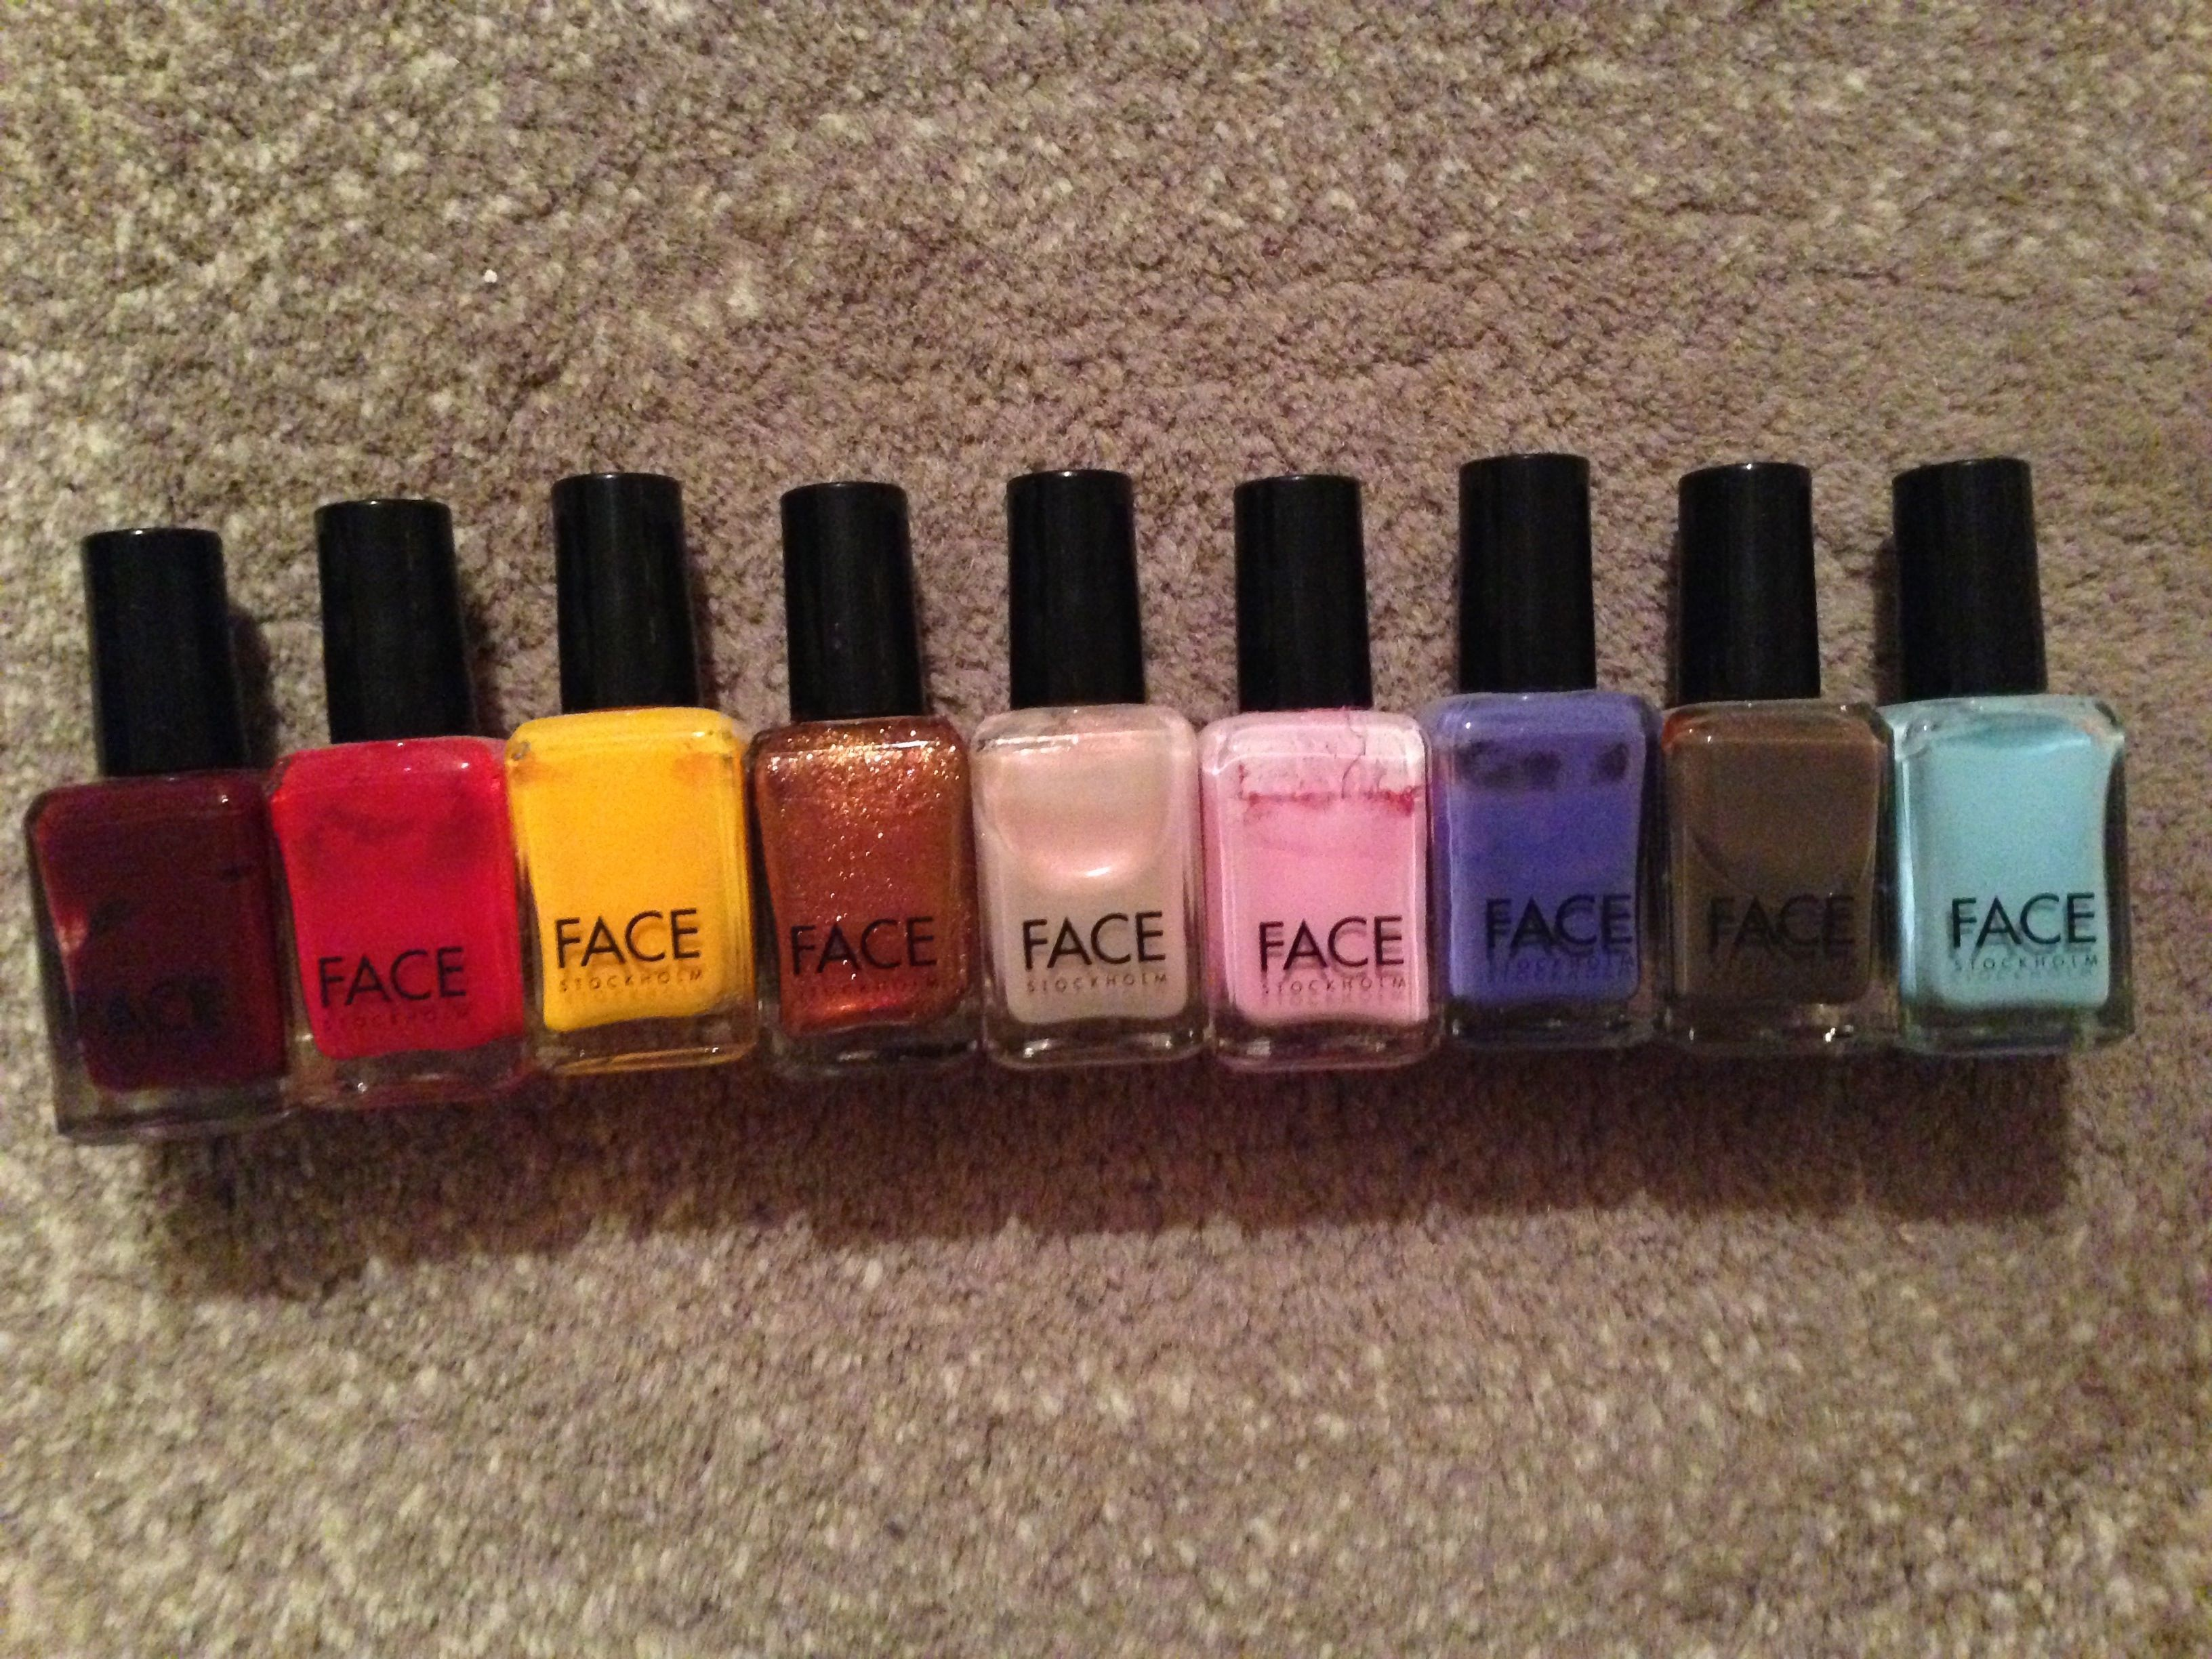 Check out my new blog post about my Face Stockholm nail polish ...